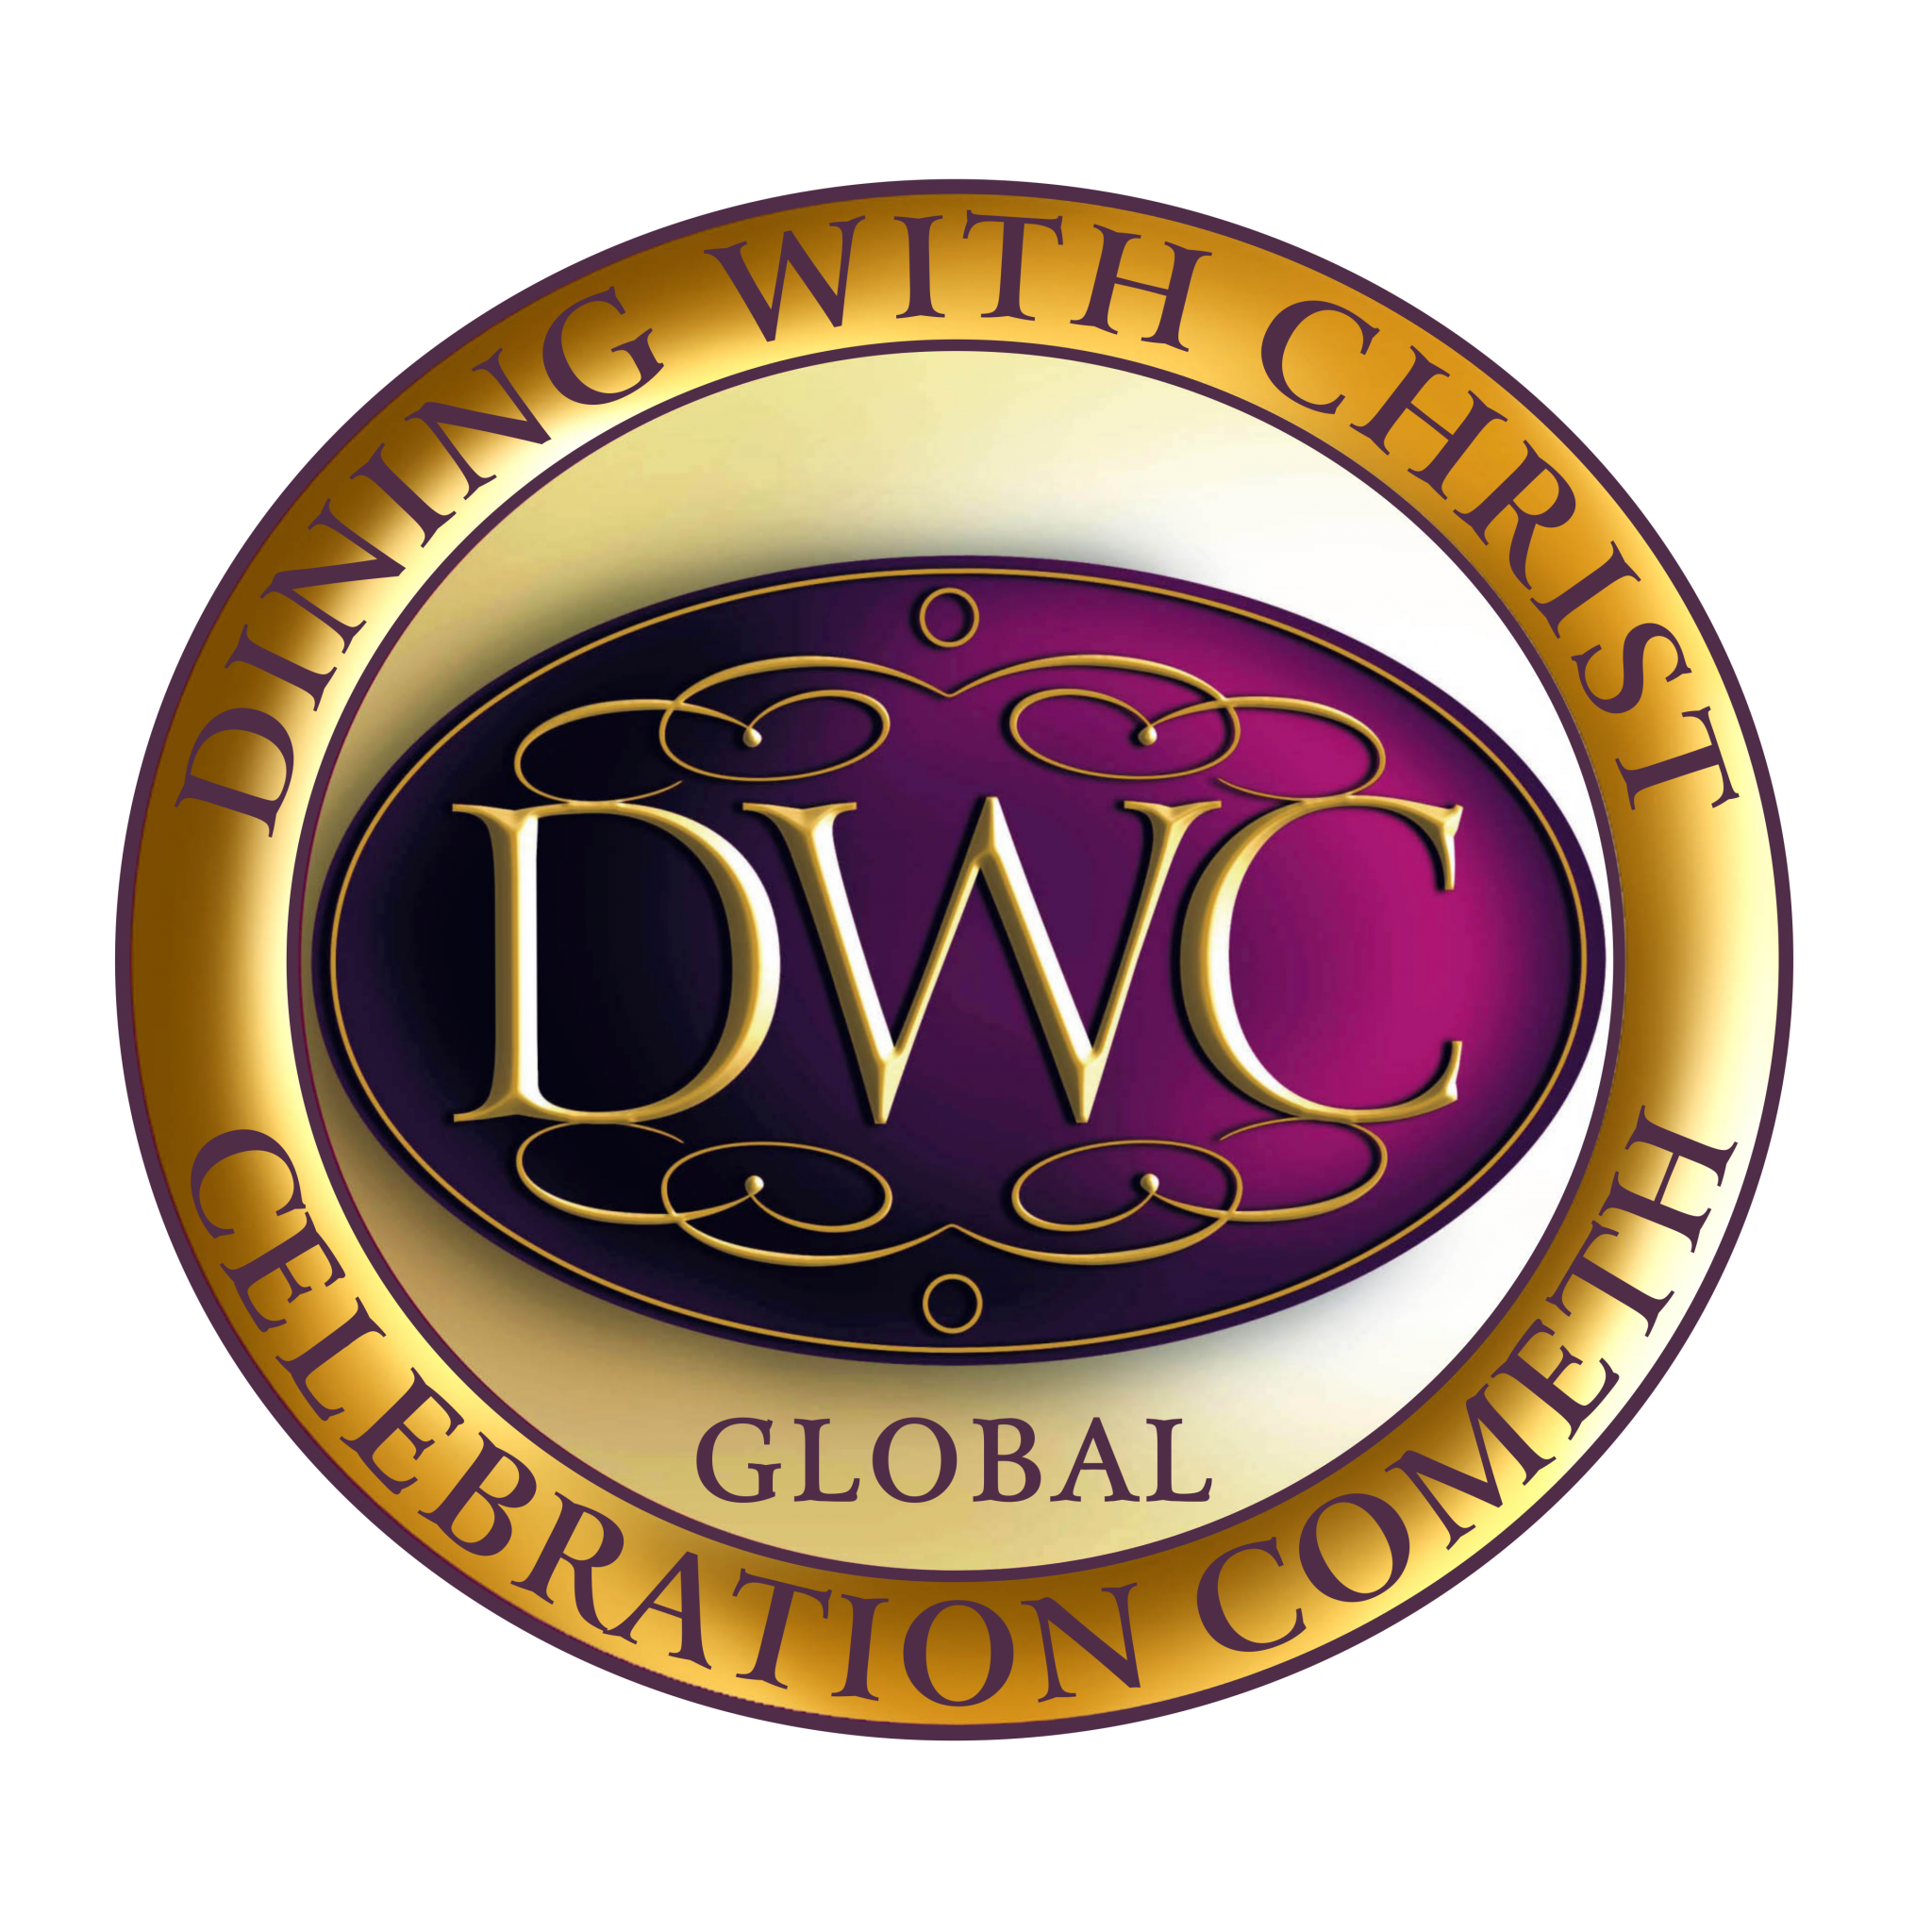 Dining With Christ Global